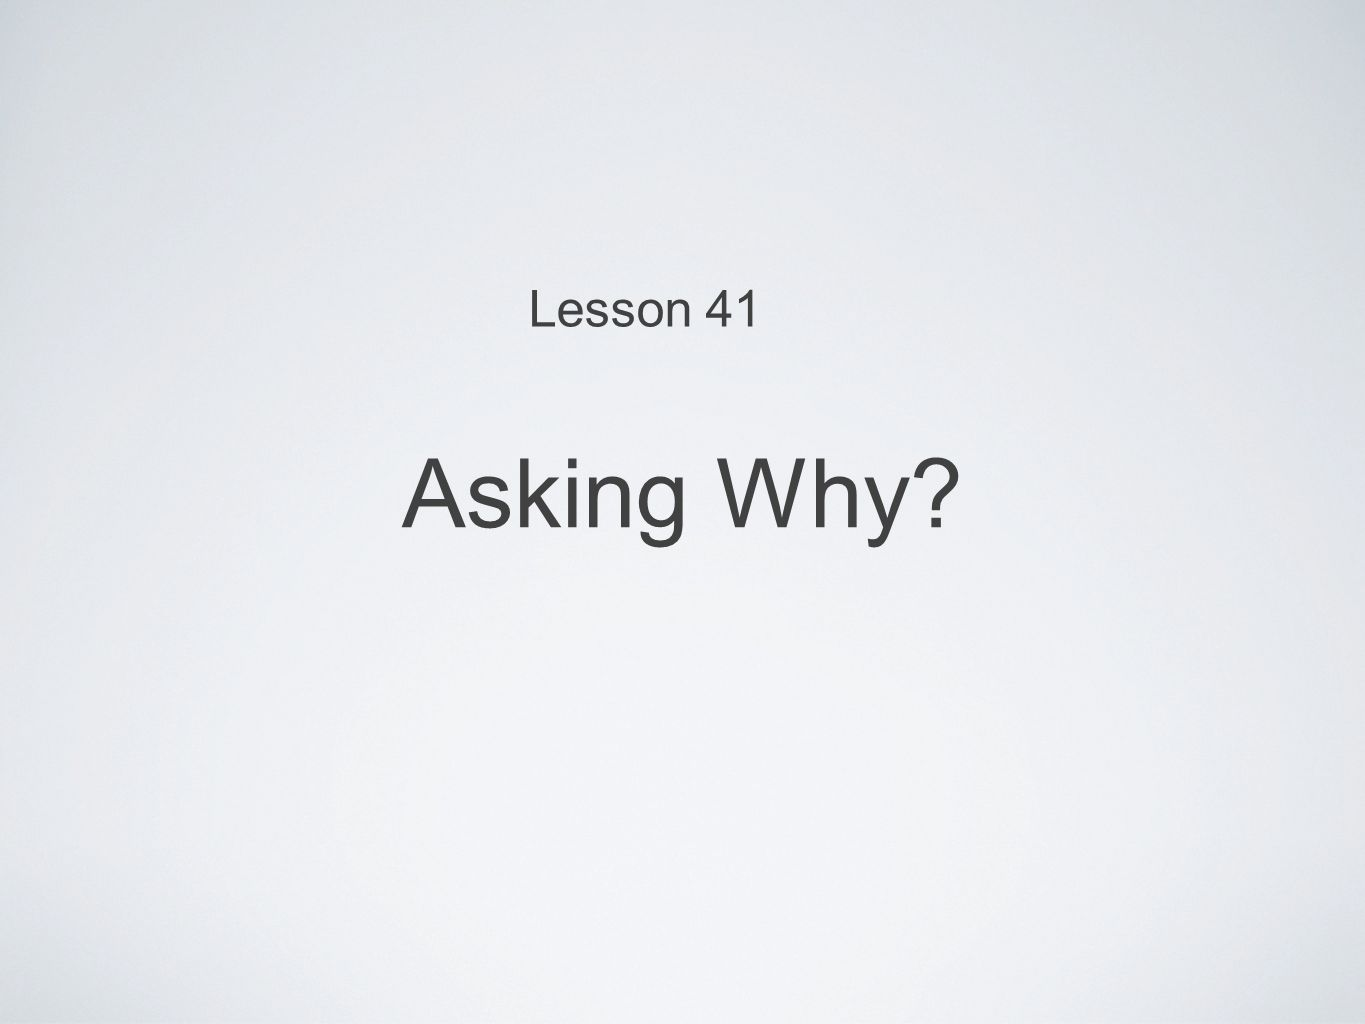 Asking Why Lesson 41